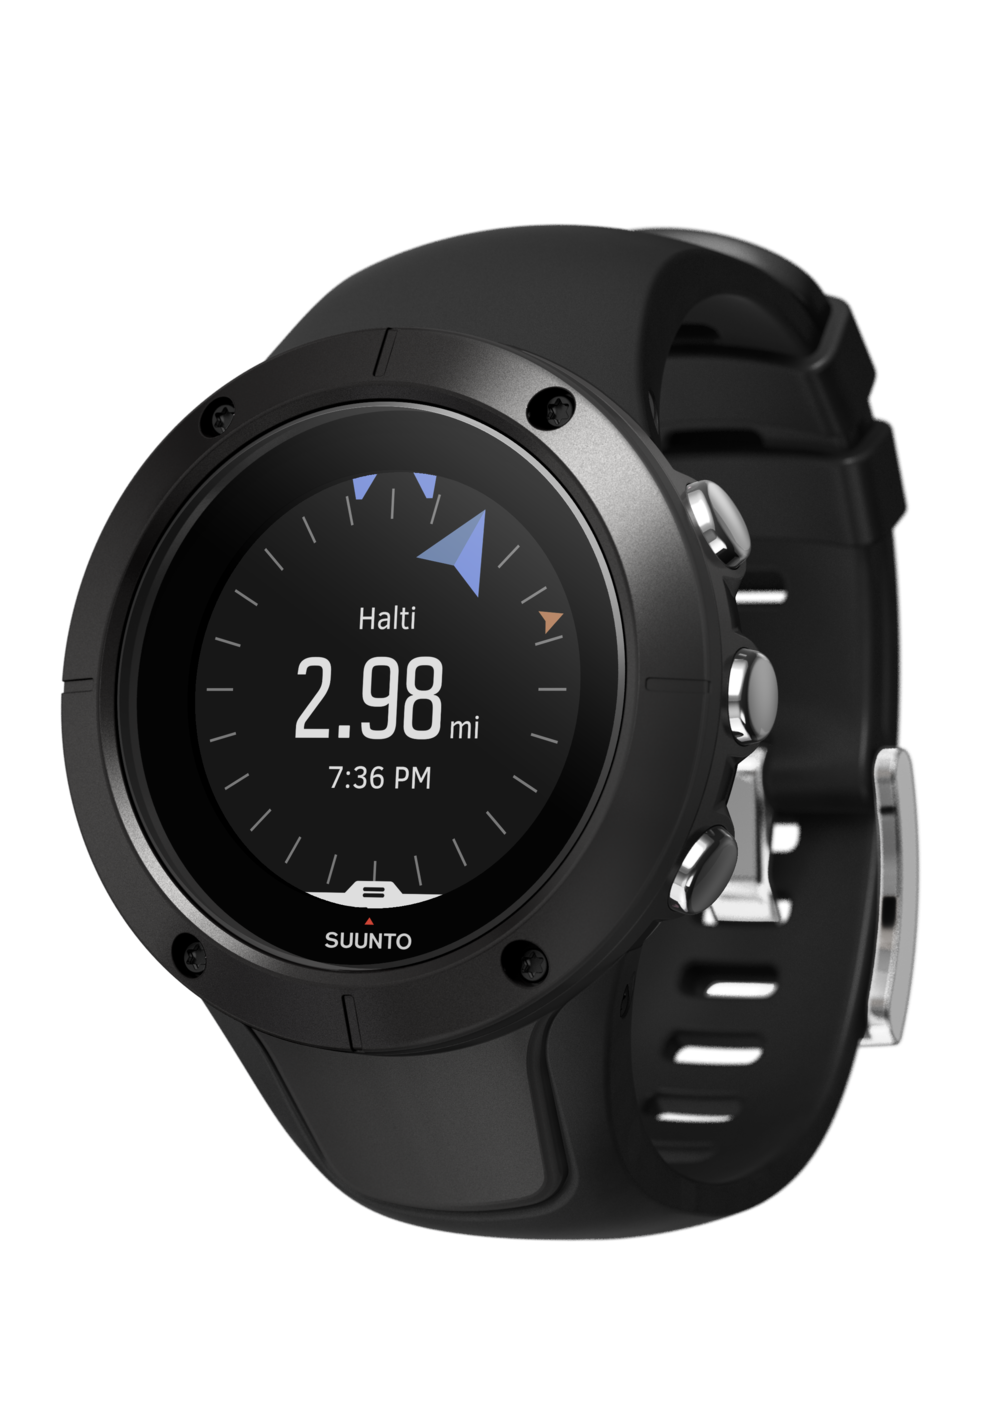 SS022668000 - SPARTAN - Trainer Wrist HR Black - Perspective View_NAV-POI-Direction-IMP.png